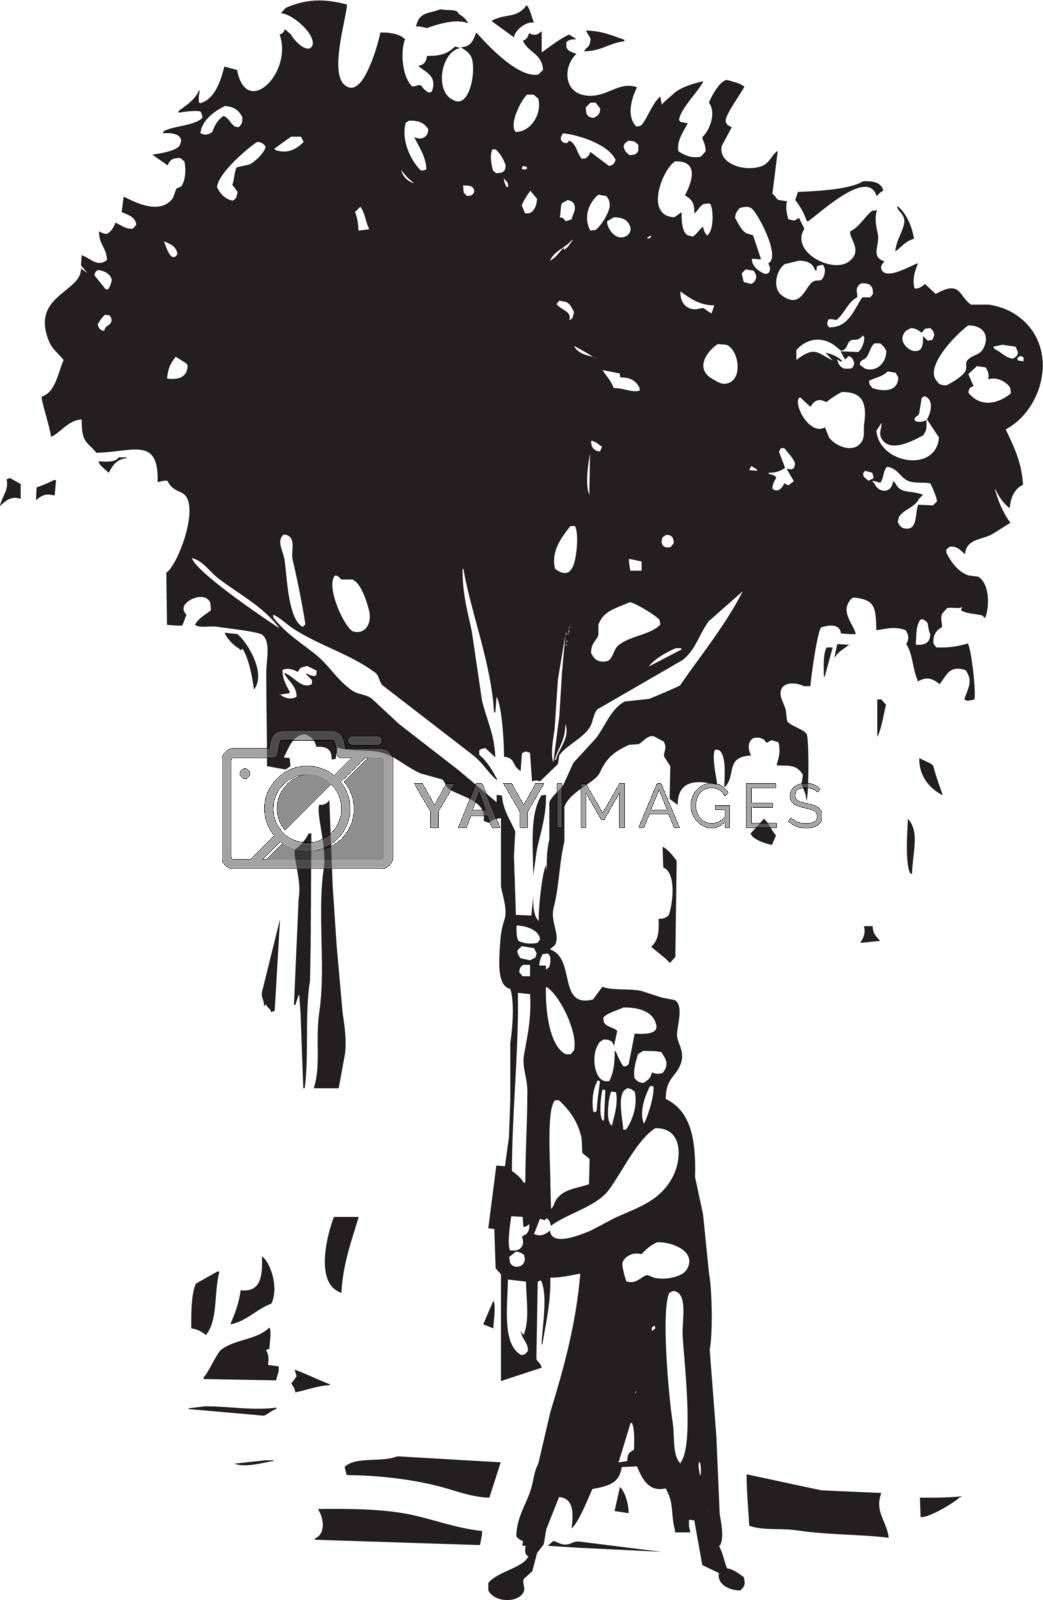 Woodcut style image of a bearded man carrying a small tree